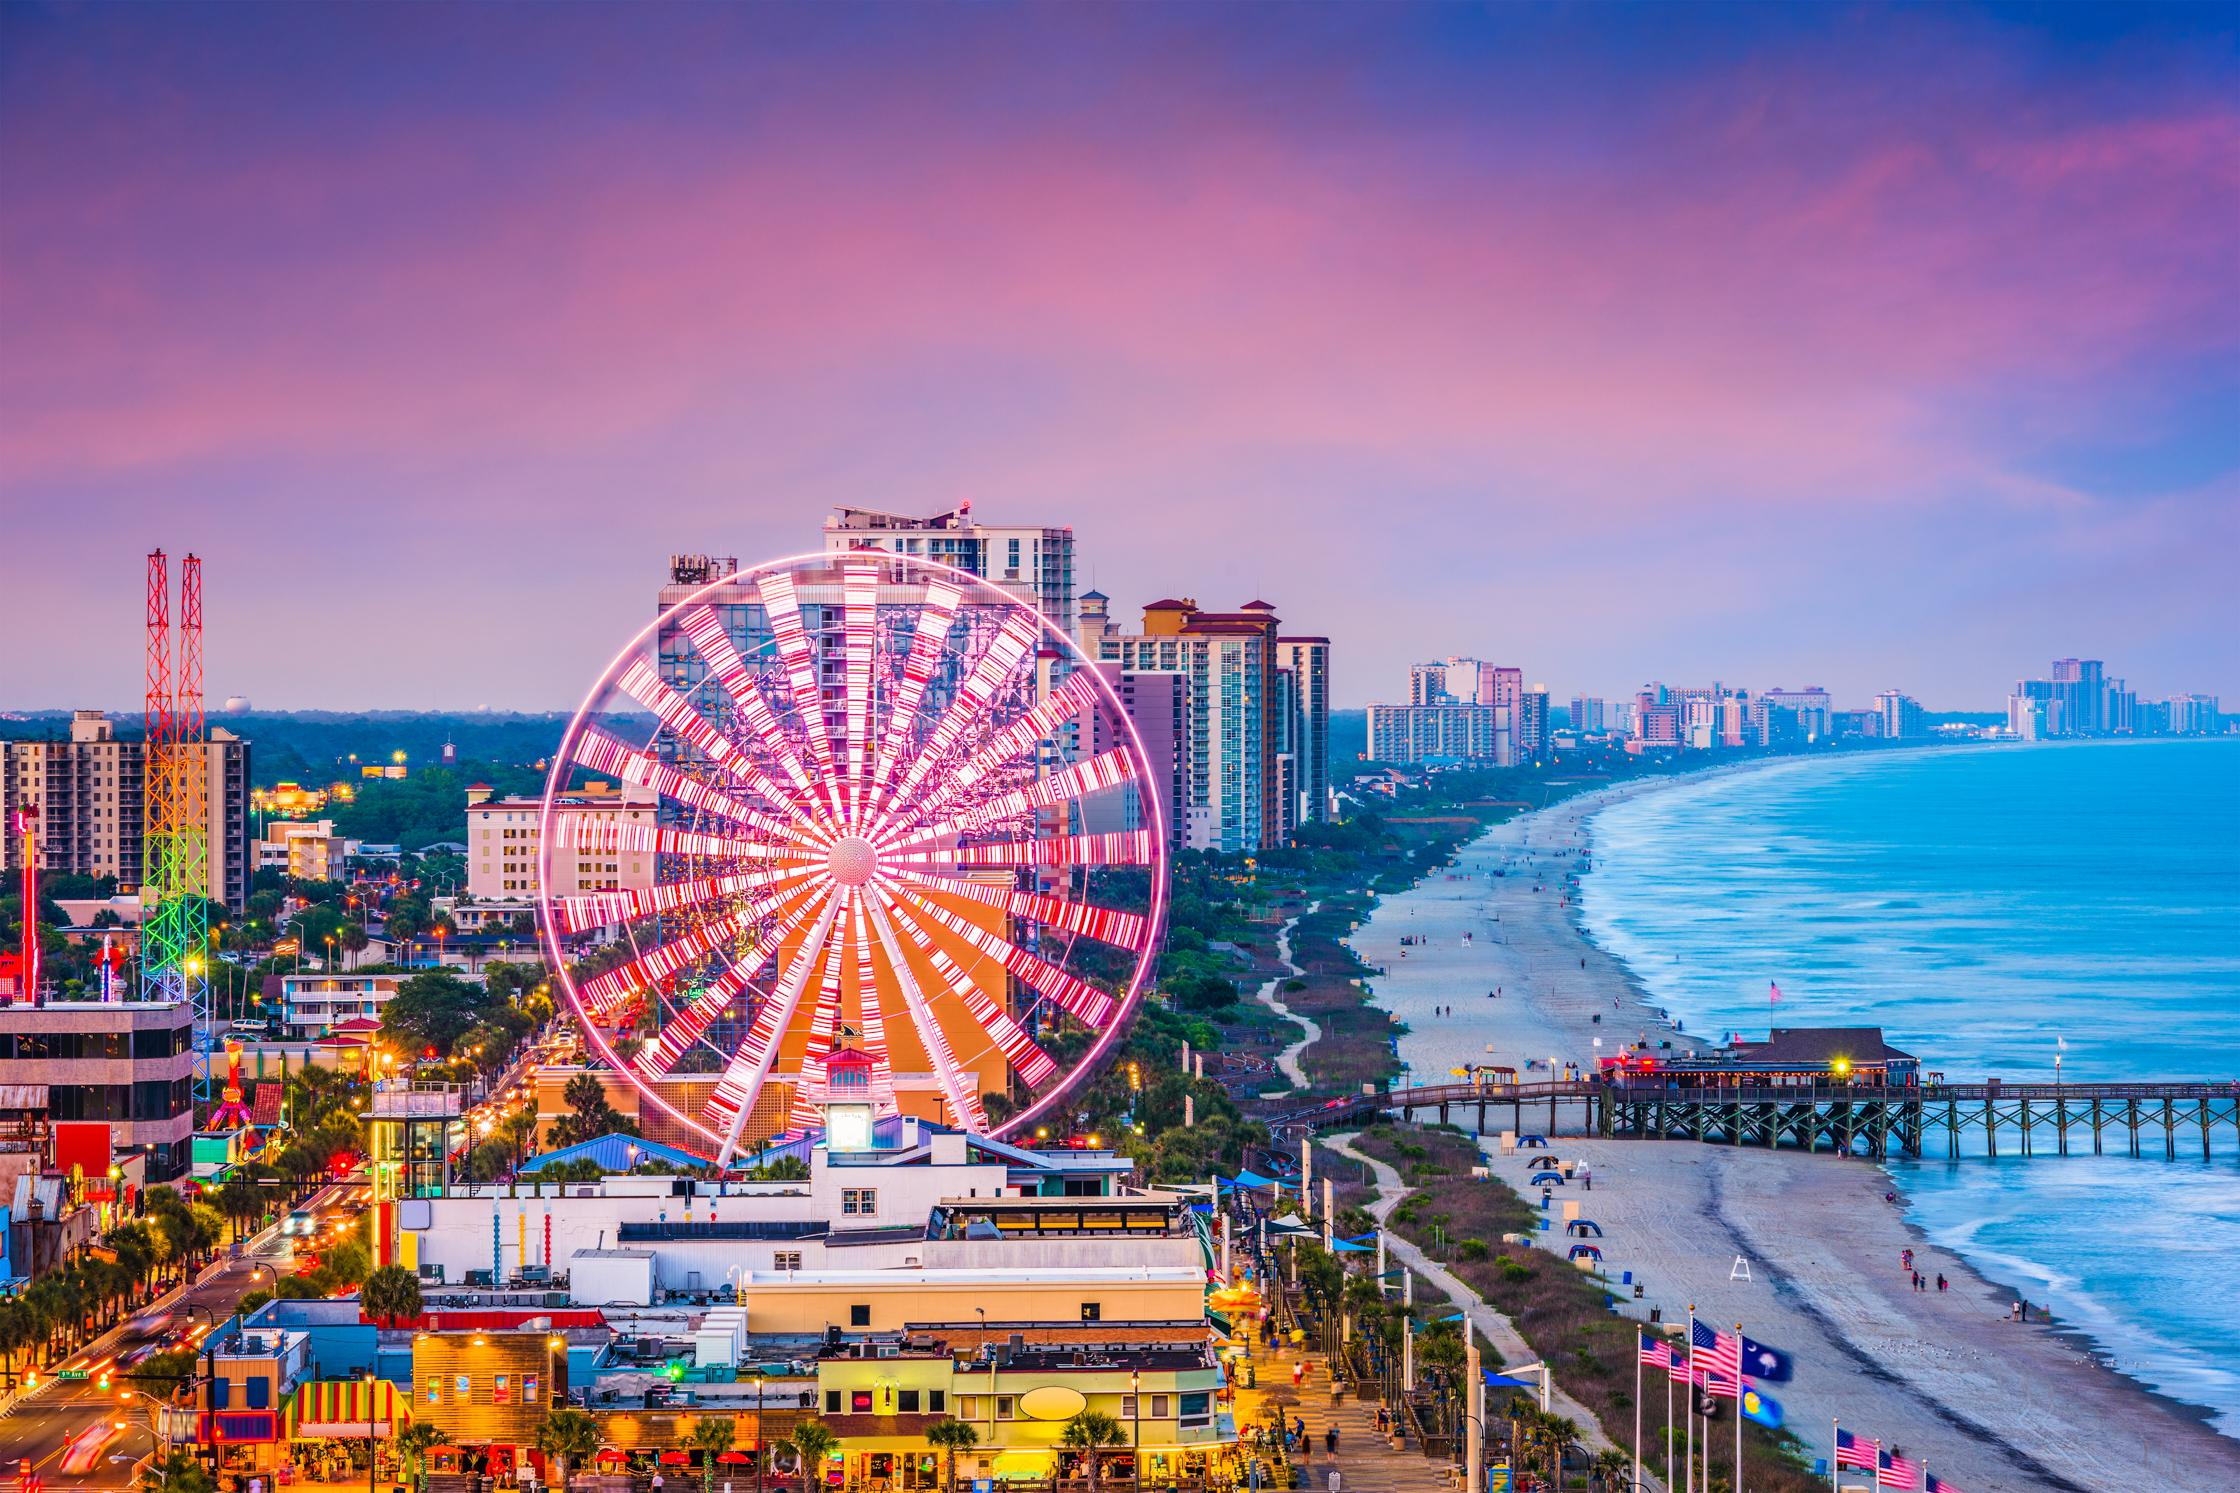 Ride the SkyWheel for a bird's-eye view of the ocean and the city.